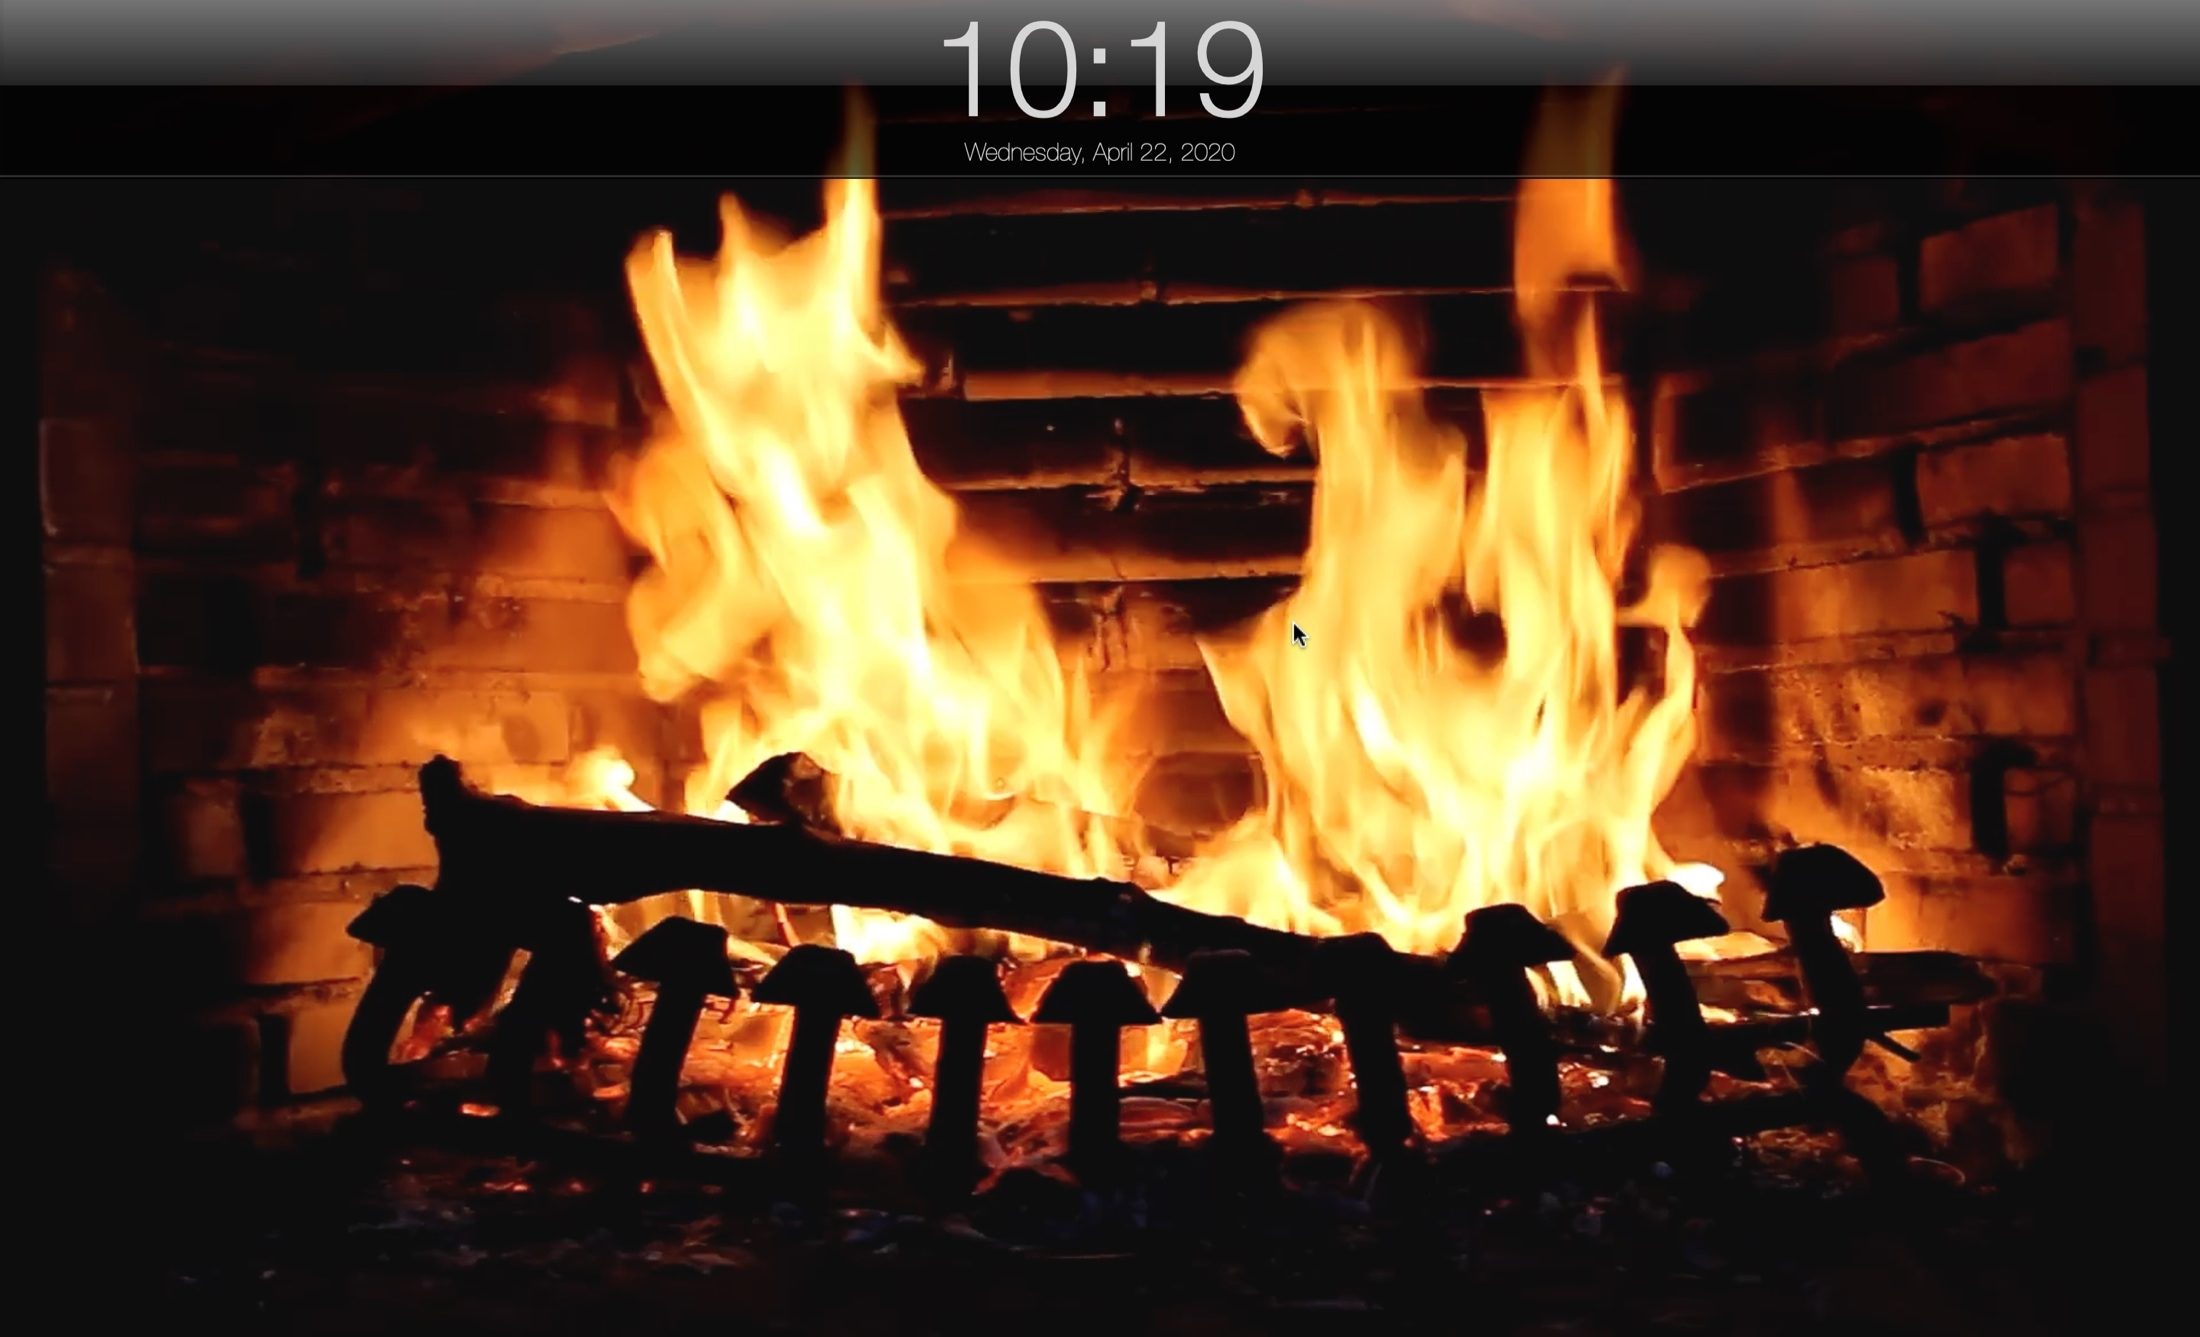 Fireplace Live HD Screensaver Mac